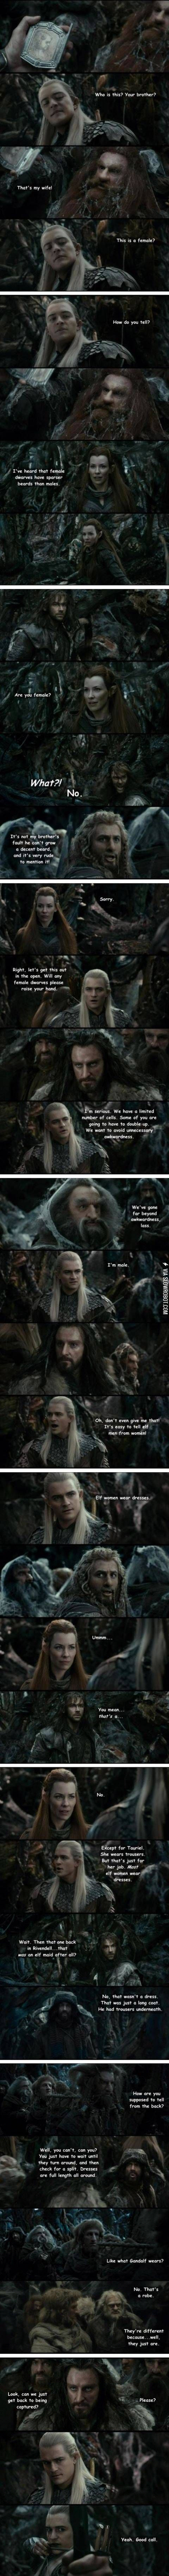 The Hobbit and gender.